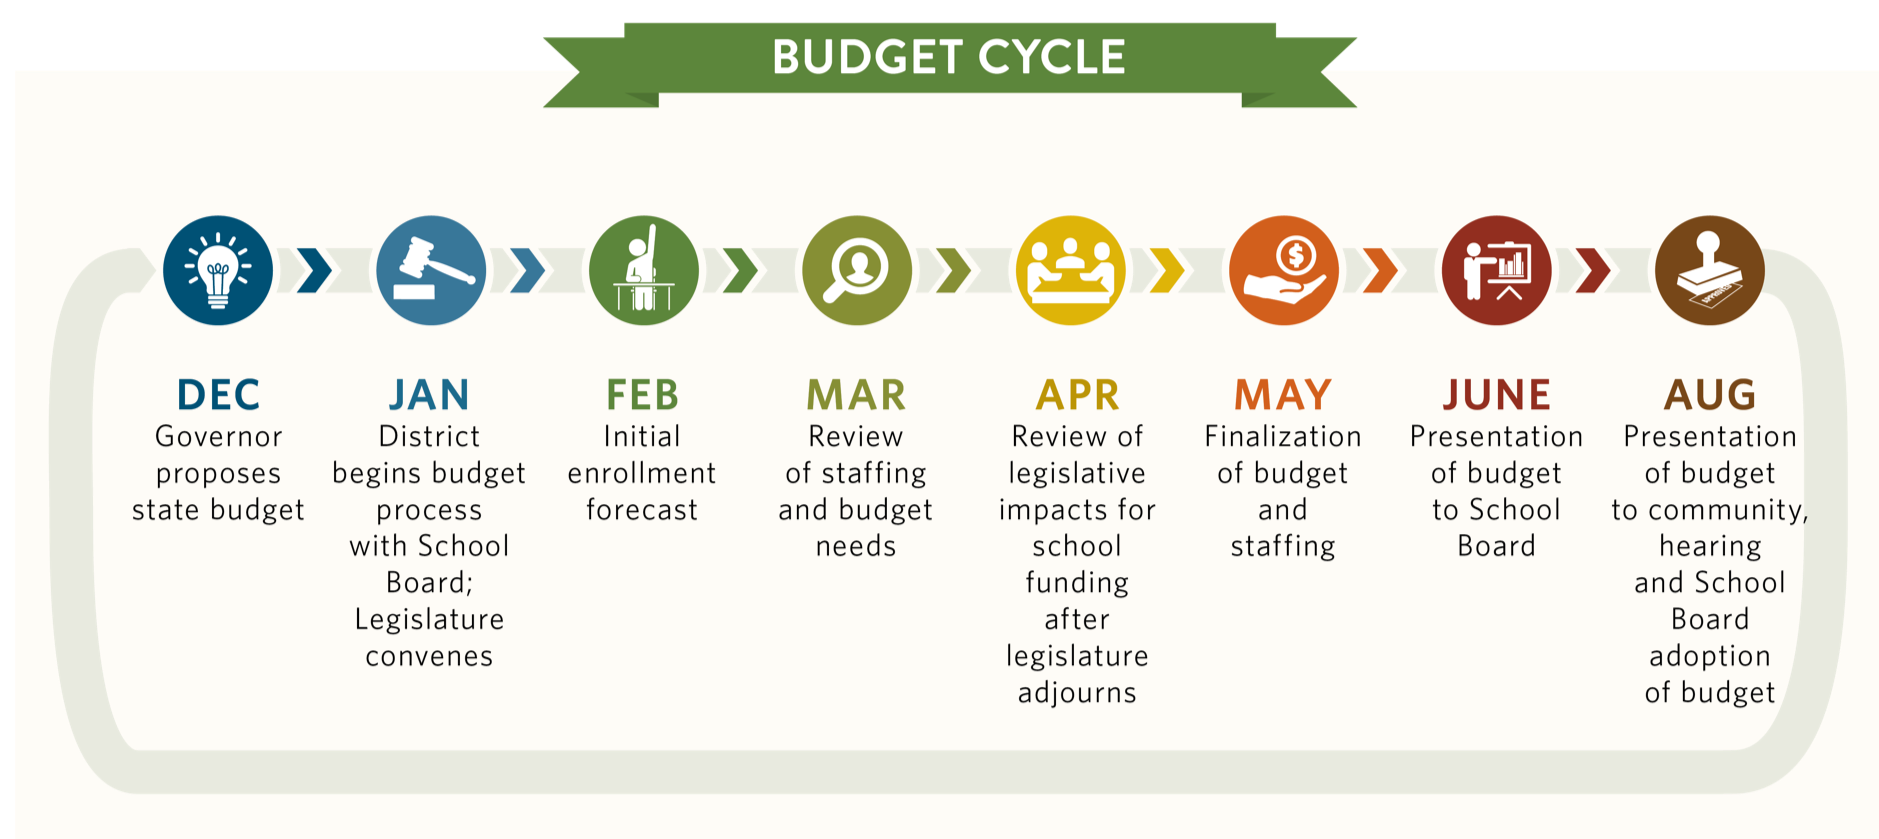 Budget Cycle - December, Governor proposes state budget, January District begins budget process with school board, legislature convenes, February Initial enrollment forecast, March review of staffing and budget needs, April Review of legislative impacts for school funding after legislature adjourns, May finalization of budget and staff, June presentation of budget to school board, august presentation of budget to community, hearing and school board adoption of budget with symbol for each step: light bulb, gavel, student with hand raised, magnifying glass, 3 people at a table, hand with coin, person presenting with graph, and stamp for approval